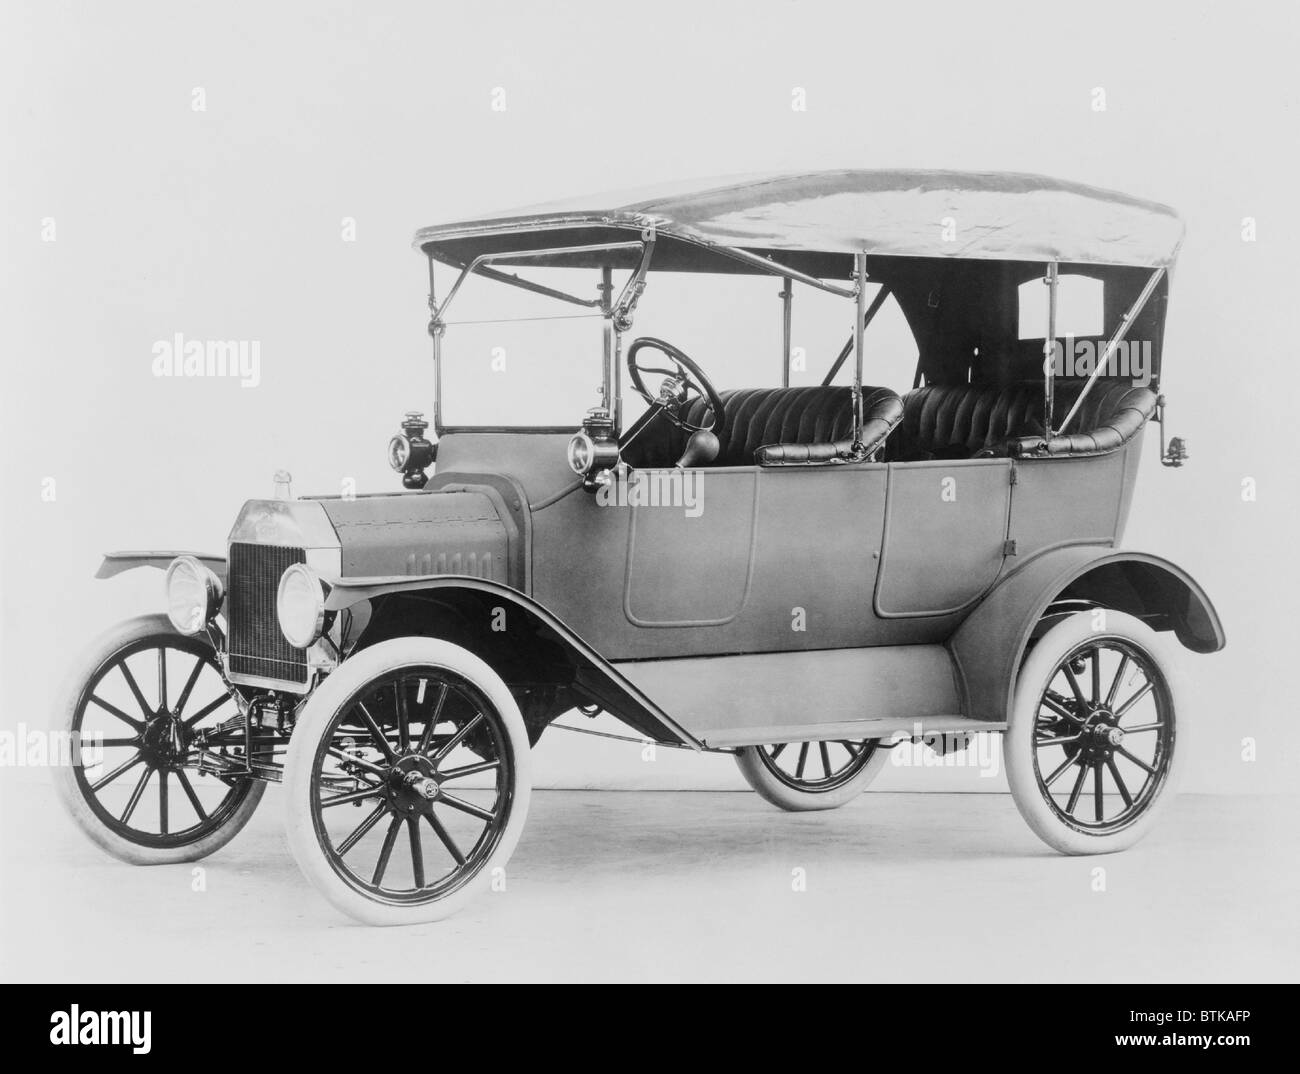 ford model t touring car model ts made between 1908 and 1914 were stock photo royalty free. Black Bedroom Furniture Sets. Home Design Ideas